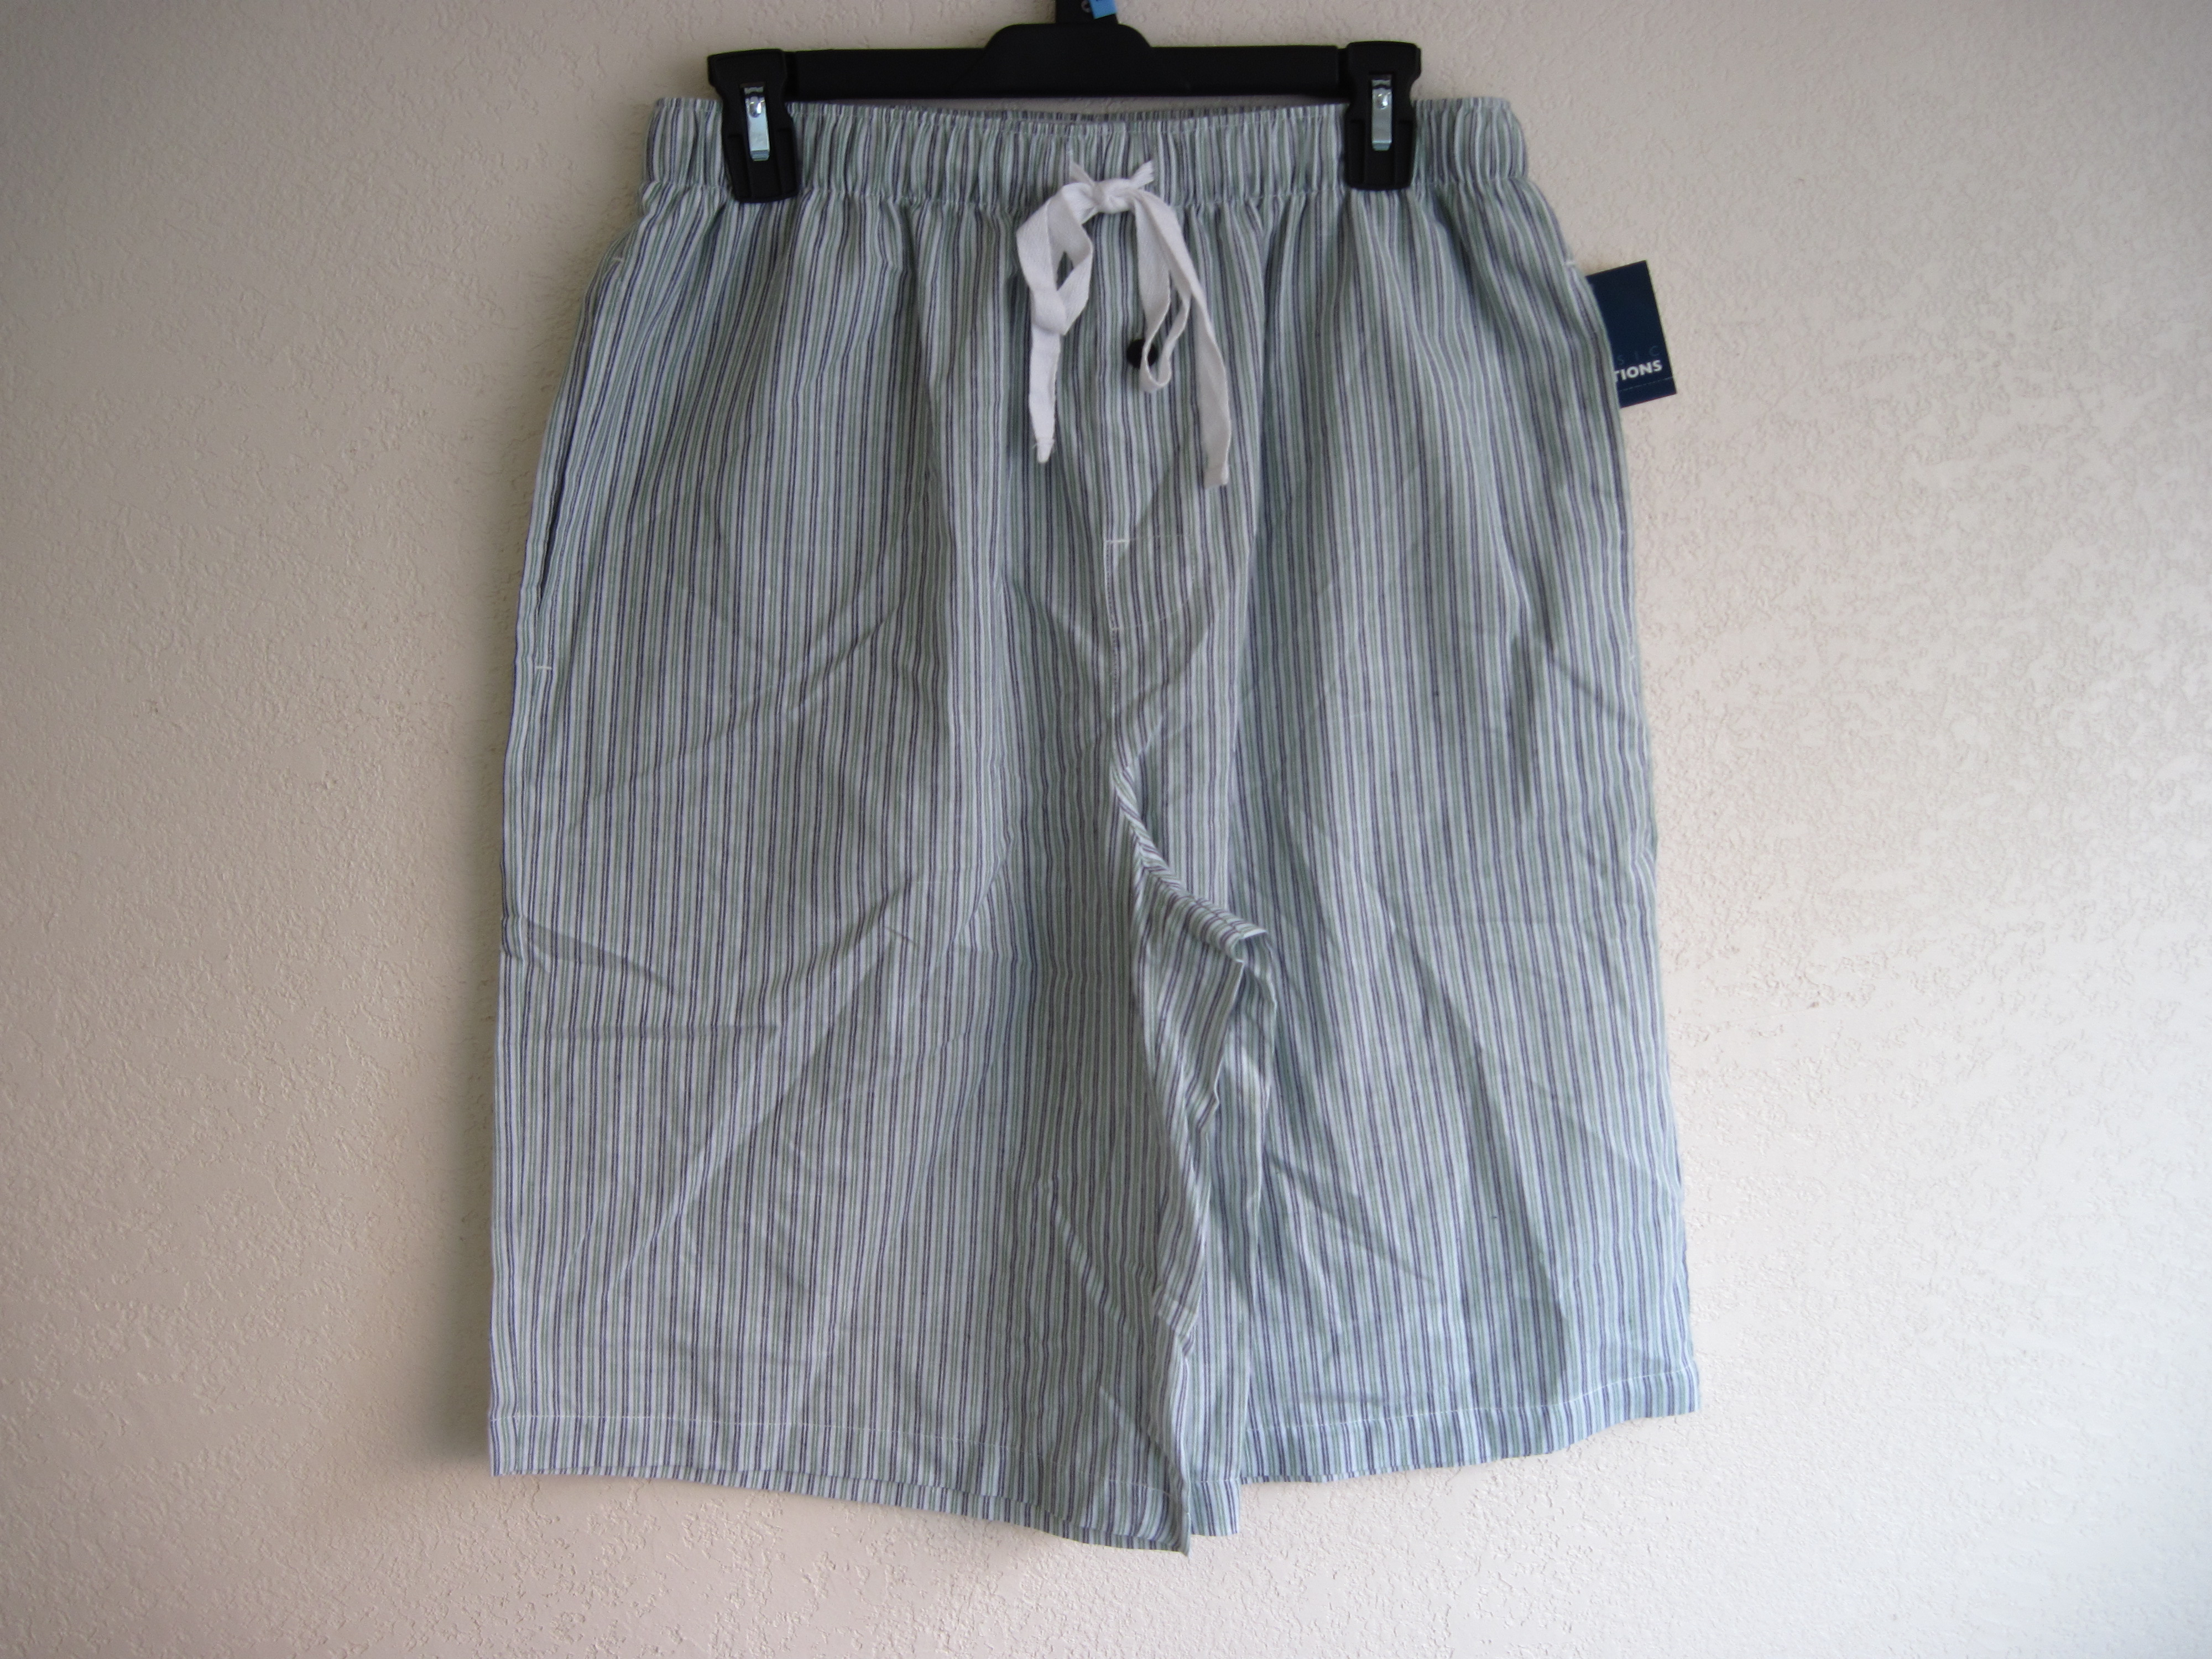 Basic Edtions Sz M Mens Sleep Shorts (striped green & black)